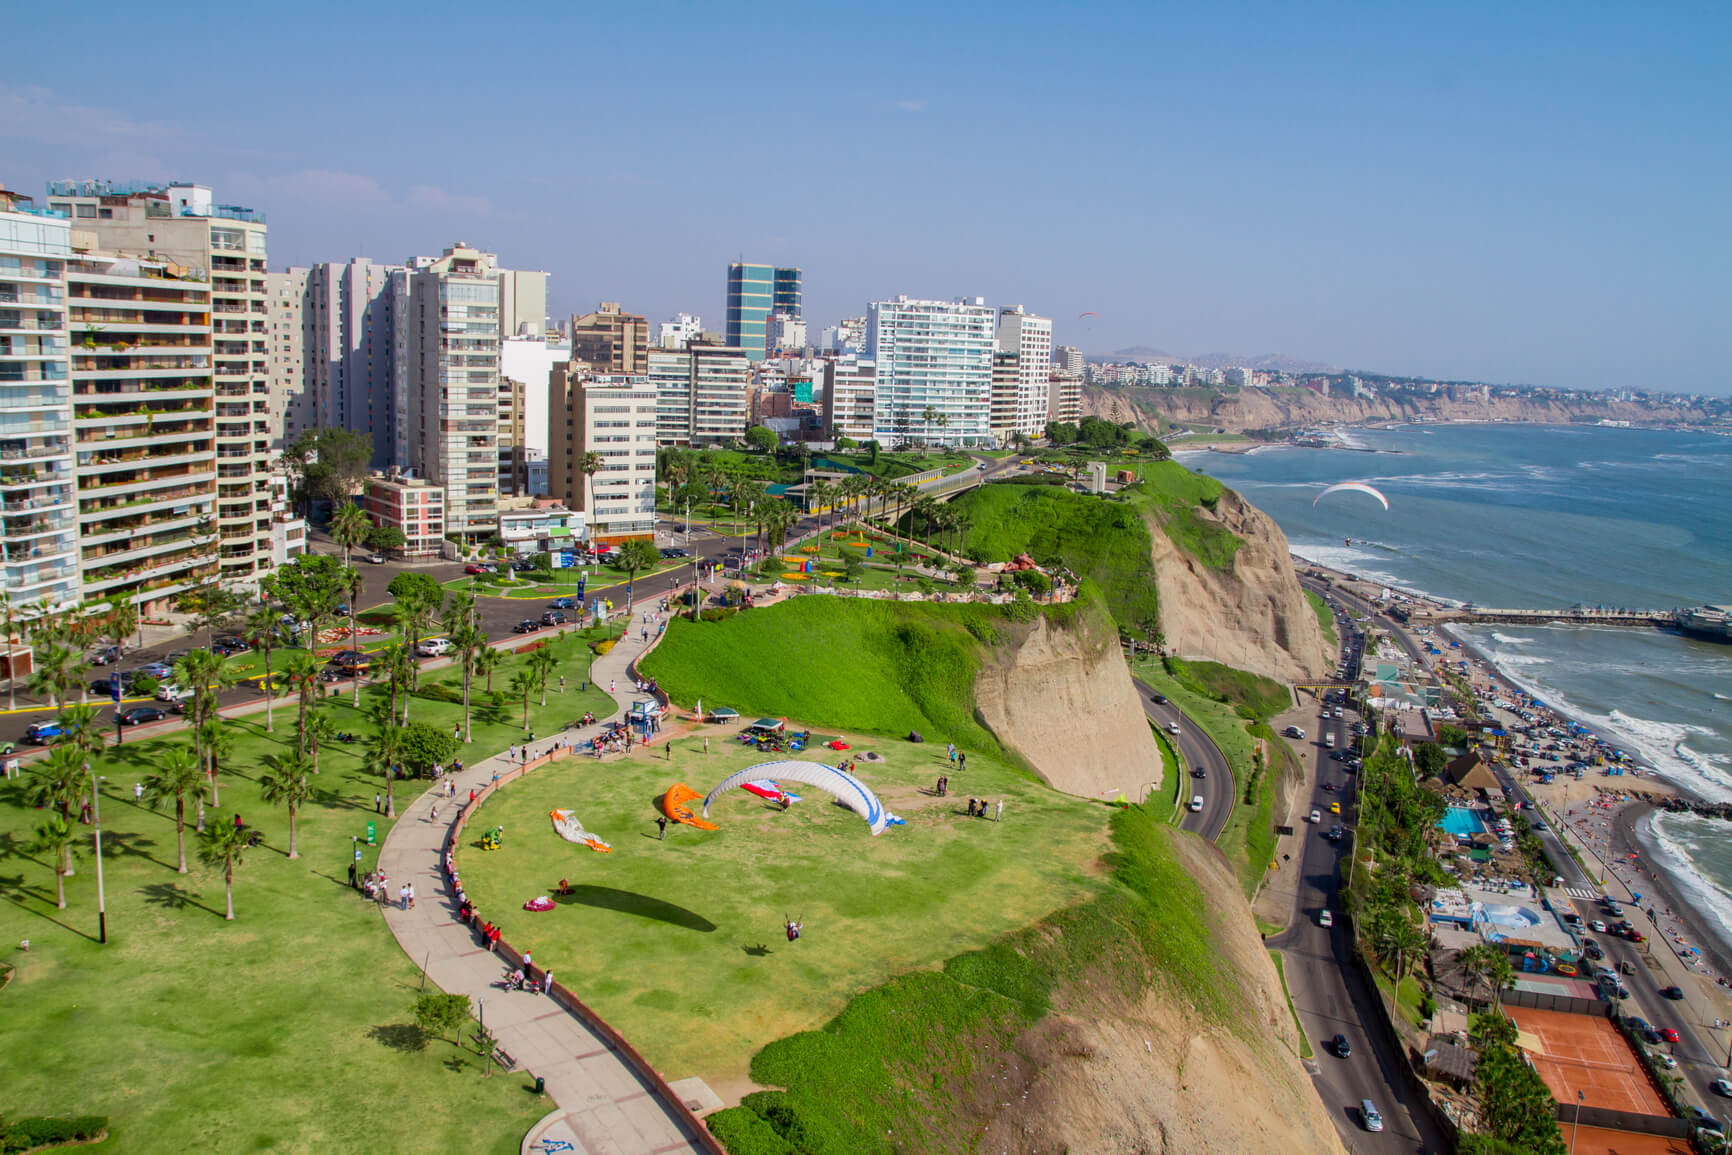 Dallas to Lima, Peru for only $237 roundtrip